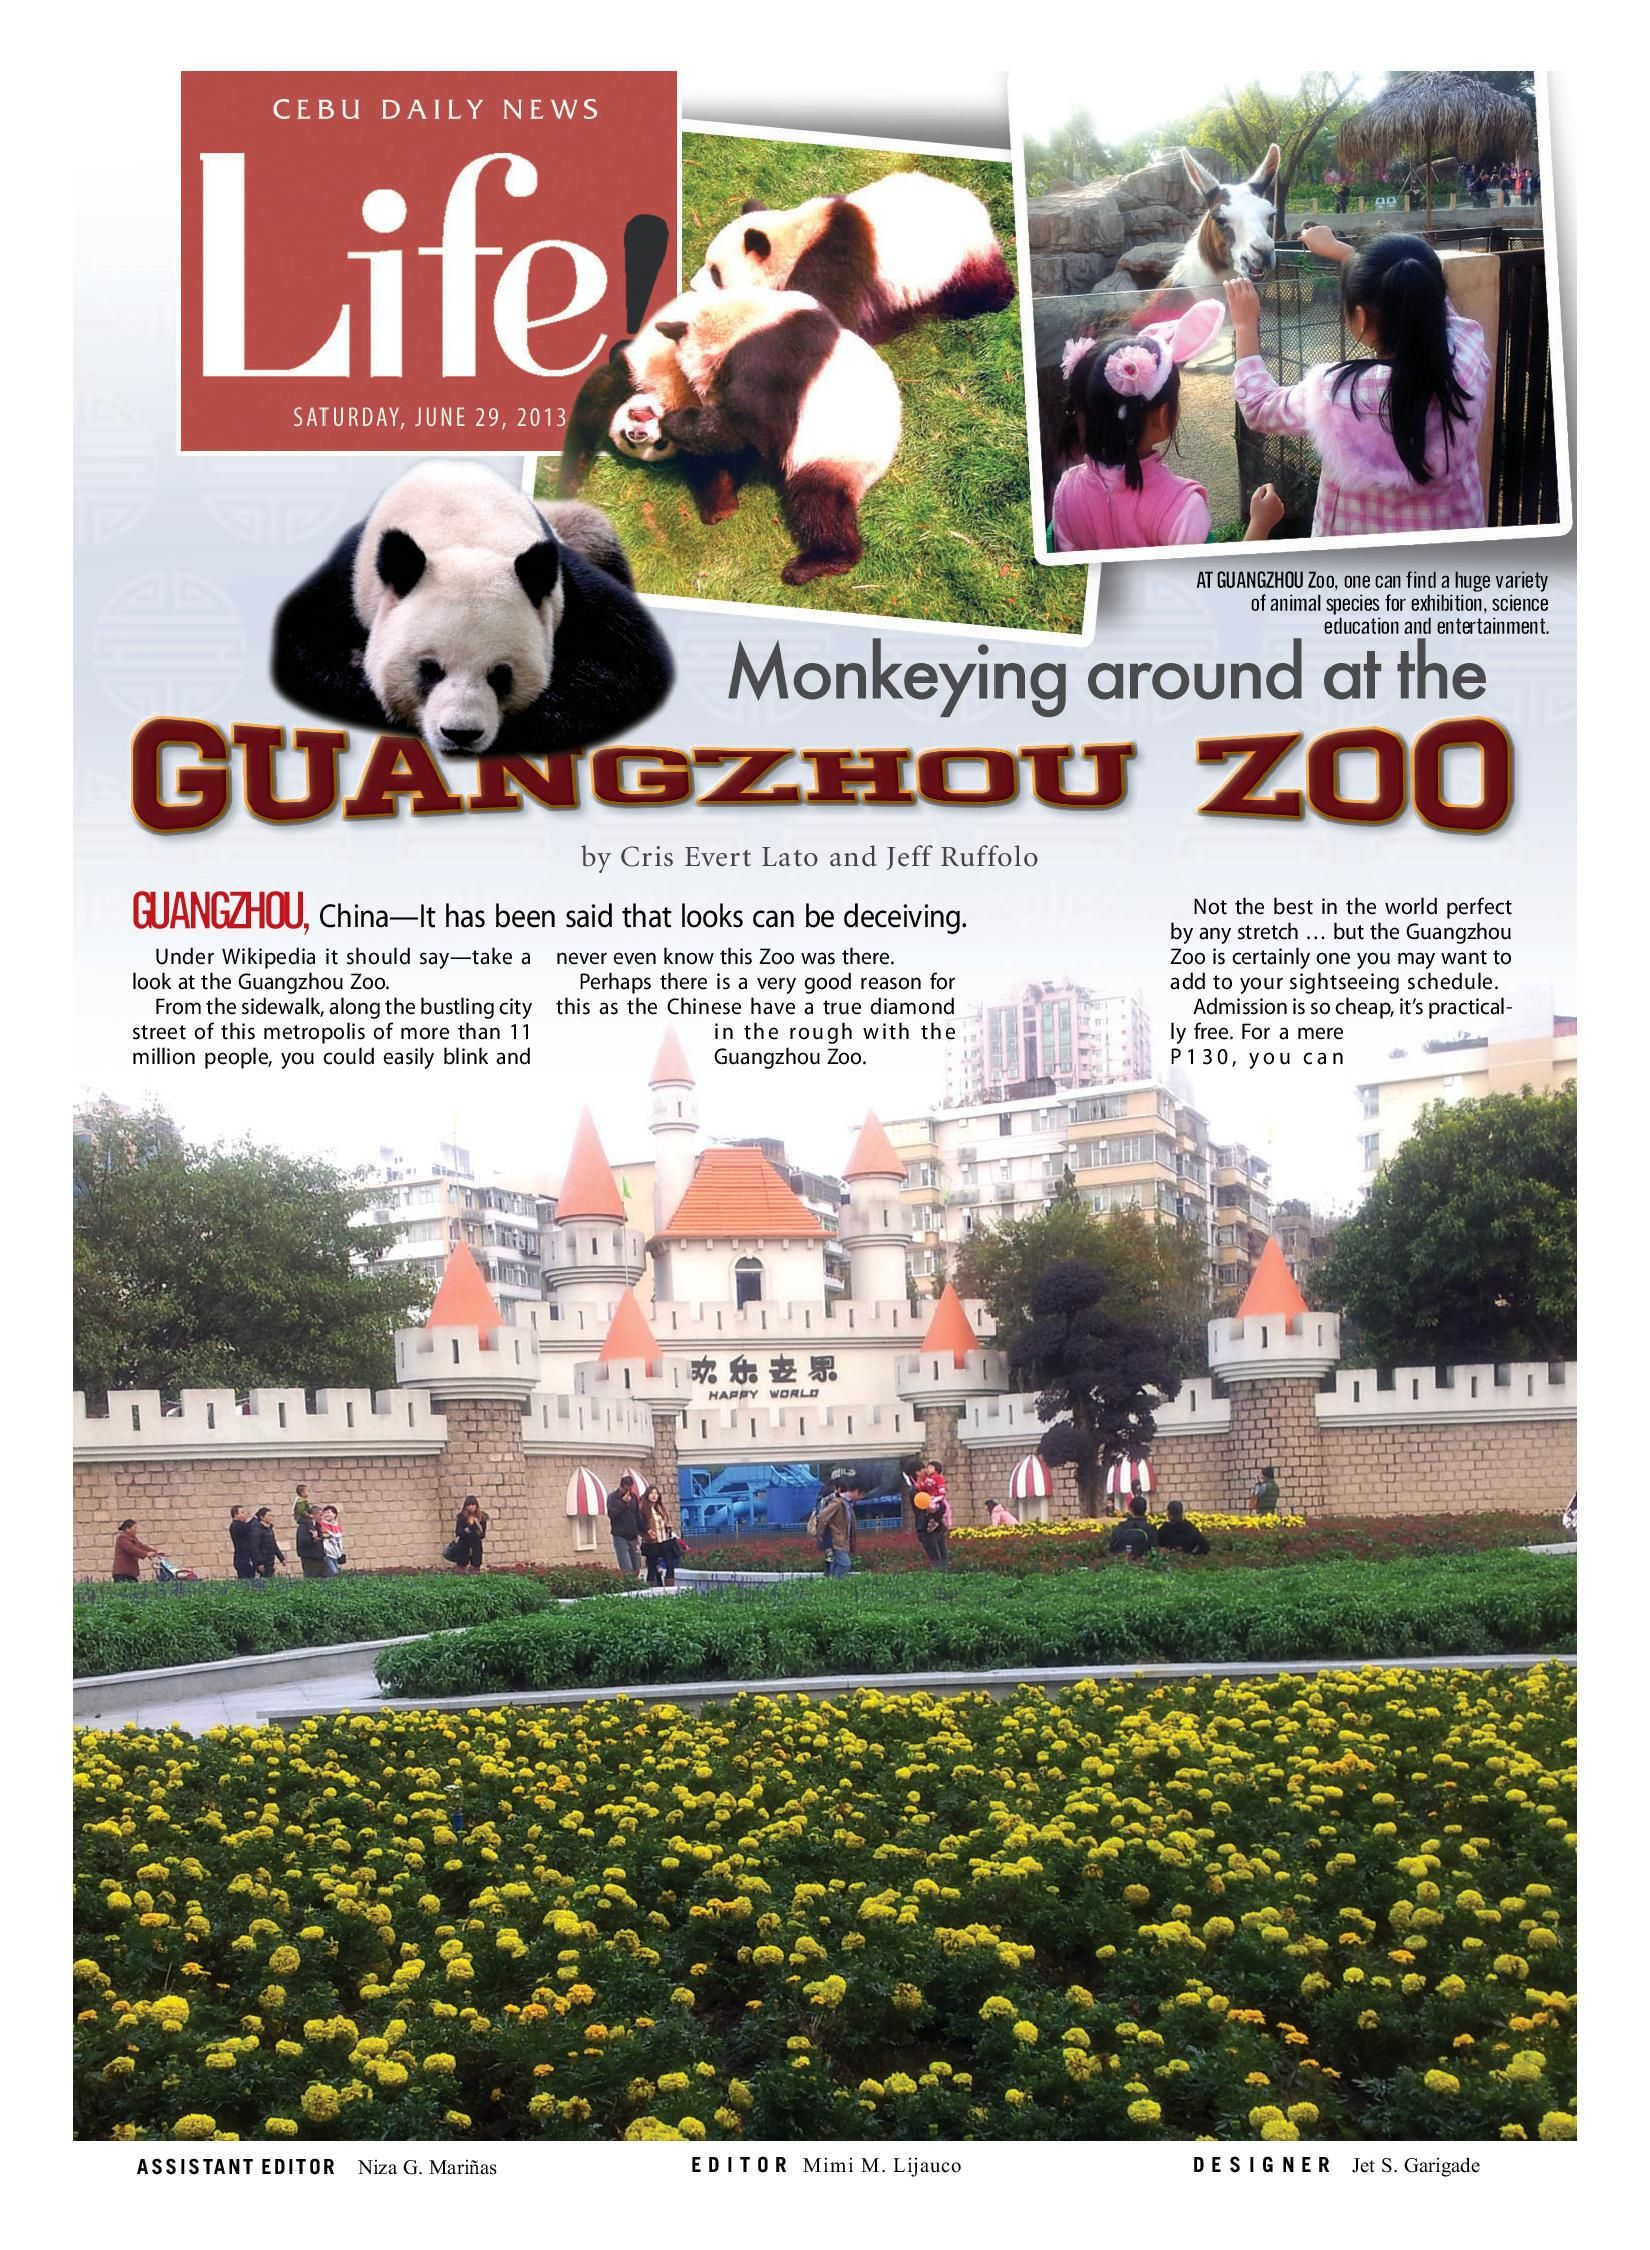 The travel featured was published in Cebu Daily News on June 29